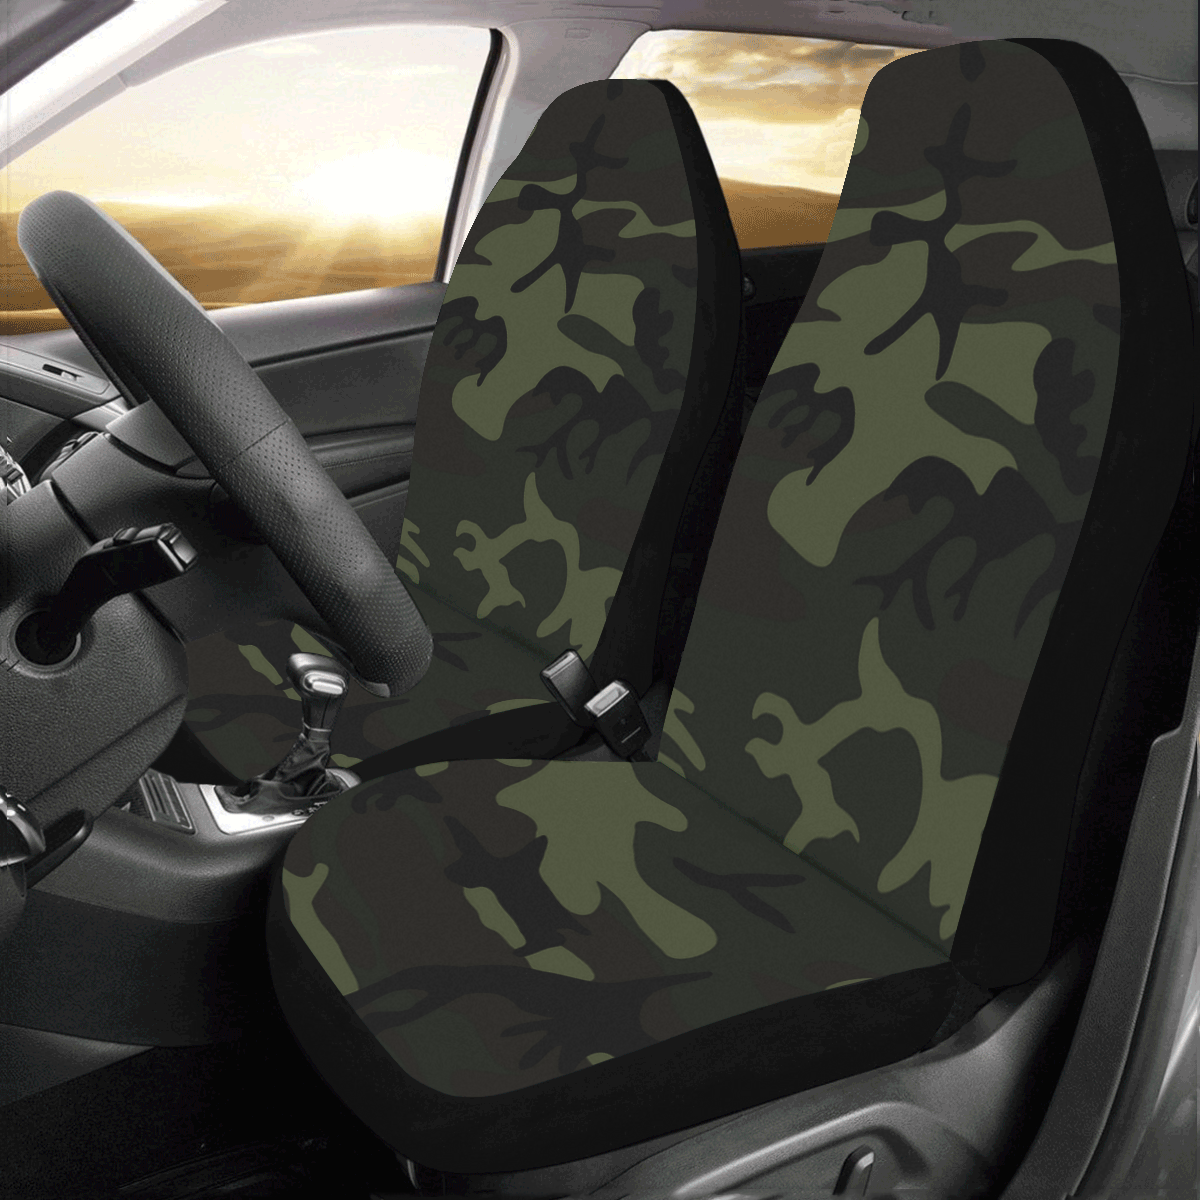 Camo Green Car Seat Covers (Set of 2)